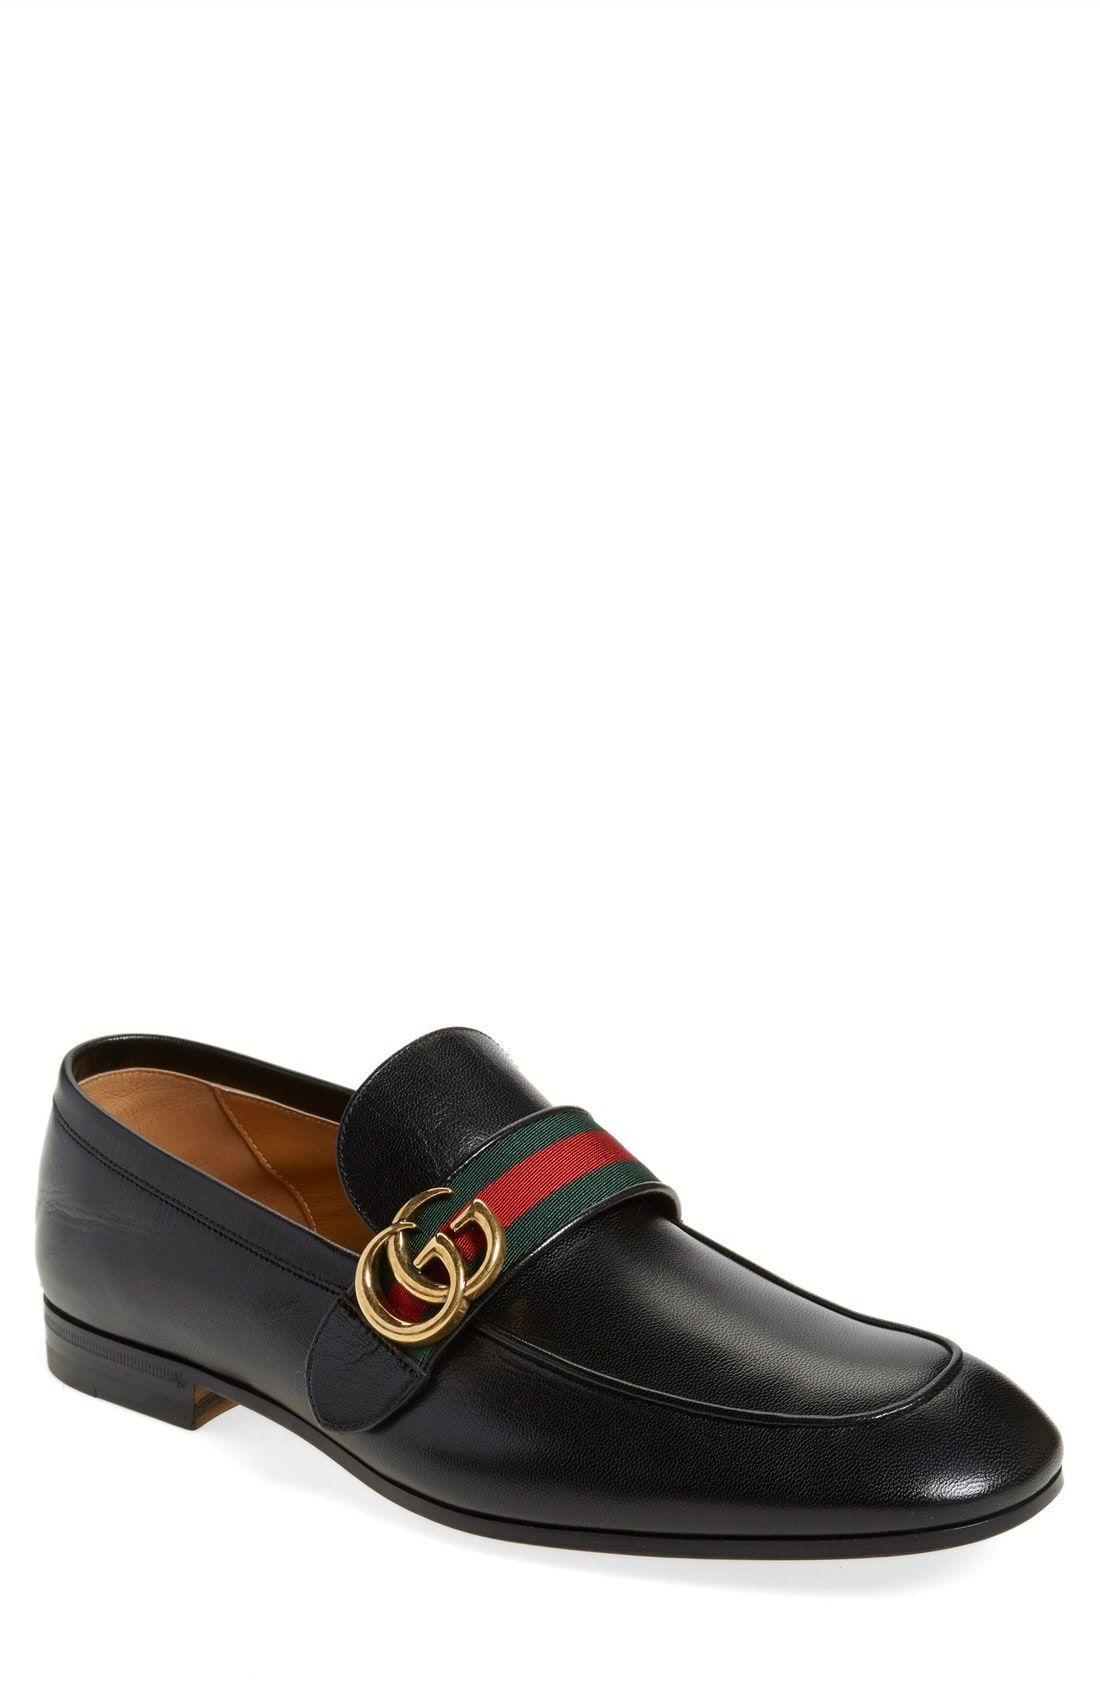 136588c7285f GUCCI DONNIE BIT LOAFER.  gucci  shoes  flats